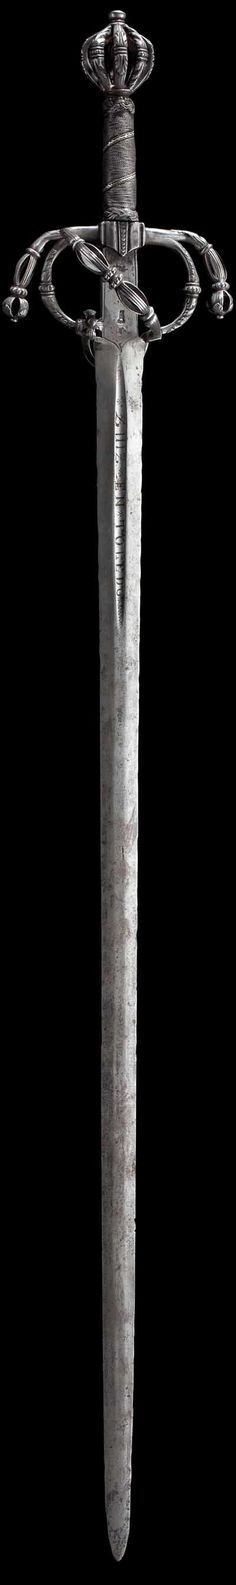 "An Italian sword with cut iron hilt circa 1560/70 Double-edged, flatly ridged blade, the ricasso stamped ""MZ"" under a crown on both sides. The short groove etched with ""DE FRANCISCO ZUIZ EN TOLEDO"". Finely cut and open-work iron hilt (loosened, slightly curved up at the ricasso) with pas d'*ne on the reverse side. Iron wire grip traversed by silver and with Turkïs heads. Length 107.5 cm. Lavishly cut hilt. http://www.hermann-historica.de/auktion/images63_max/18973.jpg"